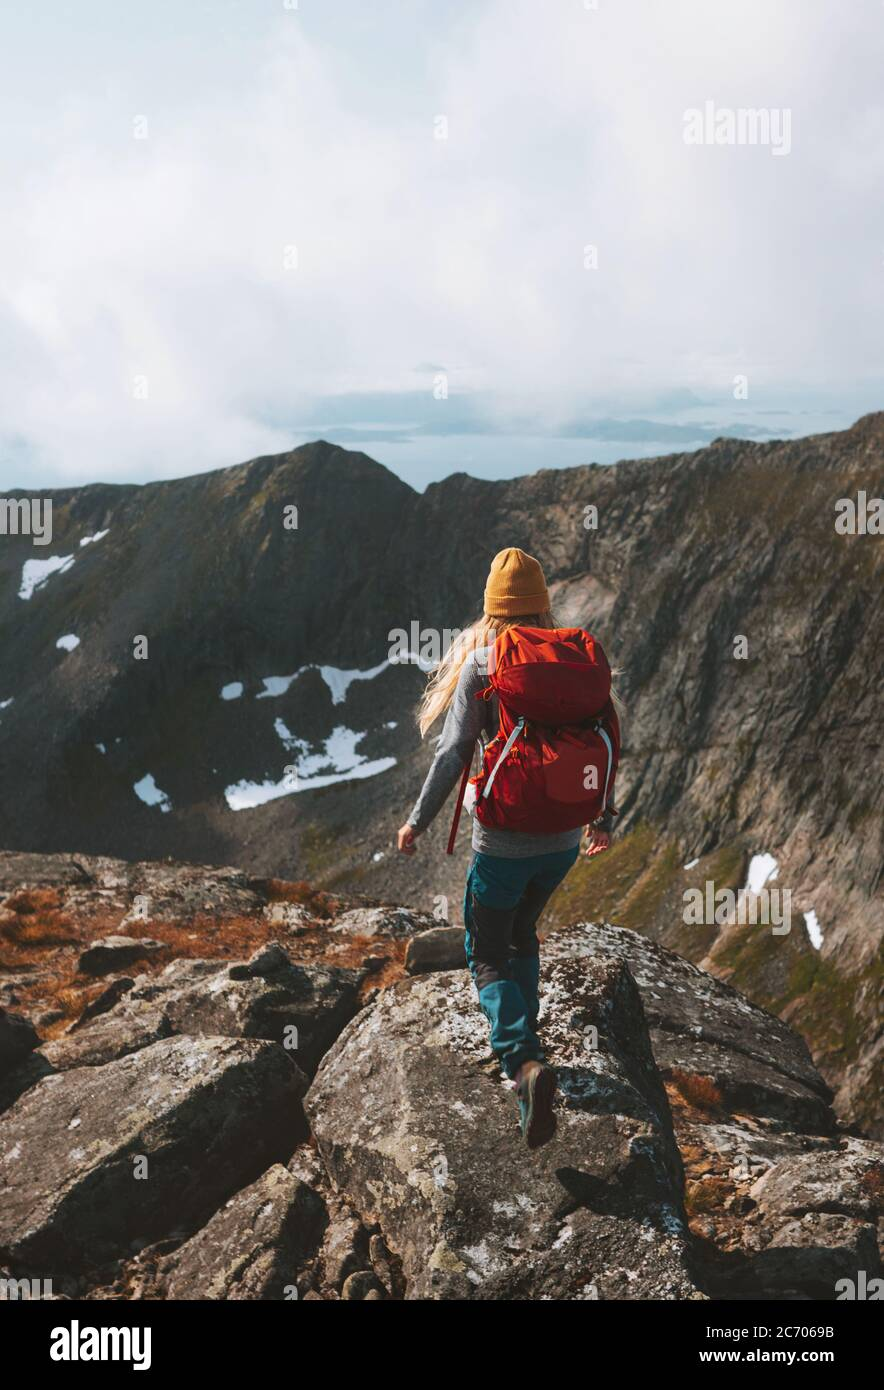 Woman trail running in mountains with red backpack travel lifestyle hiking solo active summer vacations outdoor adventure journey in Norway Stock Photo